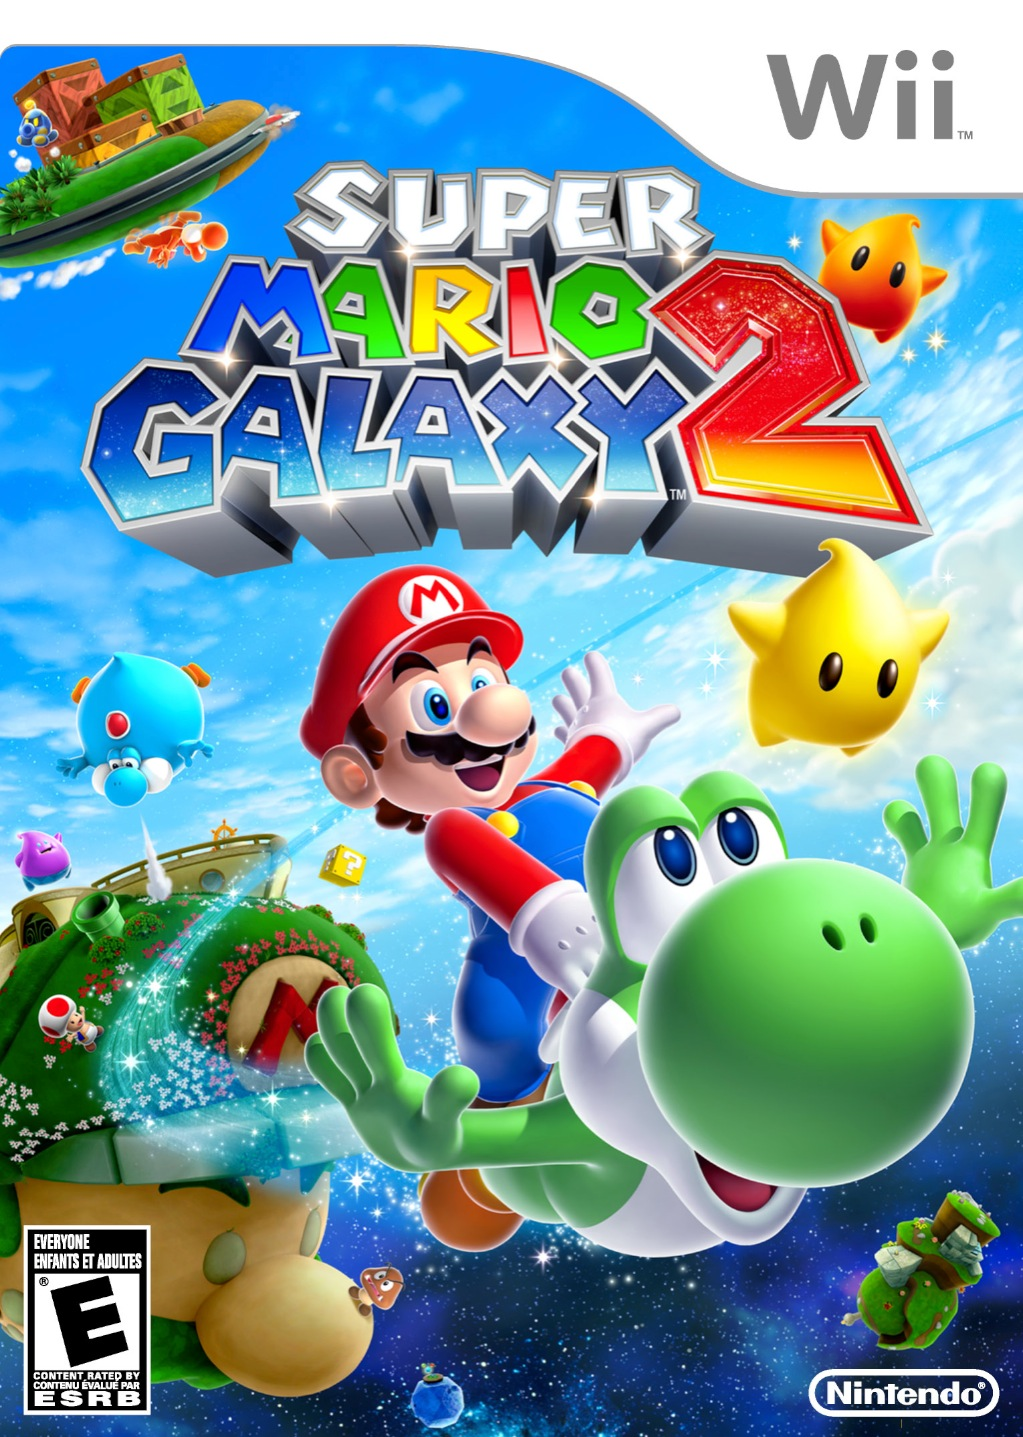 SuperMarioGalaxy2 Wii Jaquette